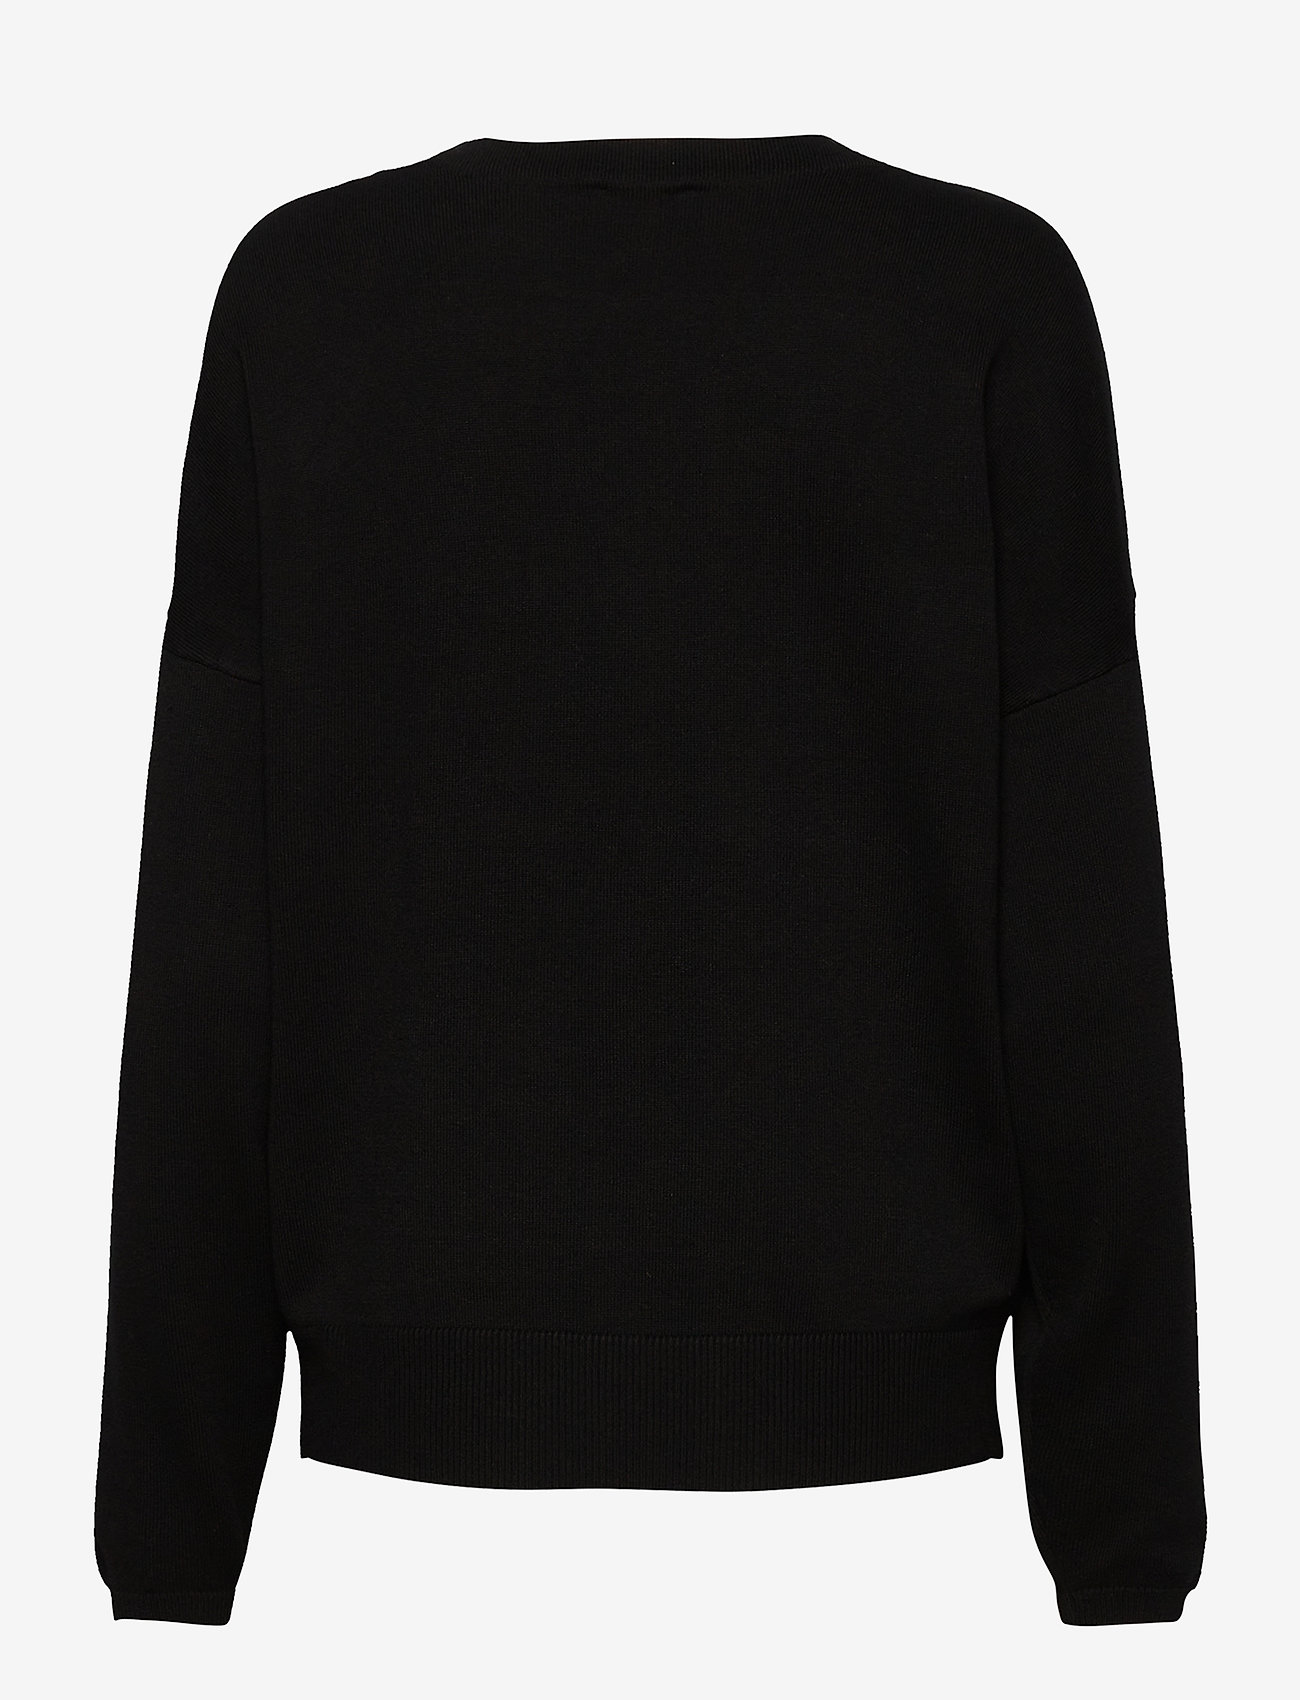 Taifun - PULLOVER LONG-SLEEVE - tröjor - black patterned - 1